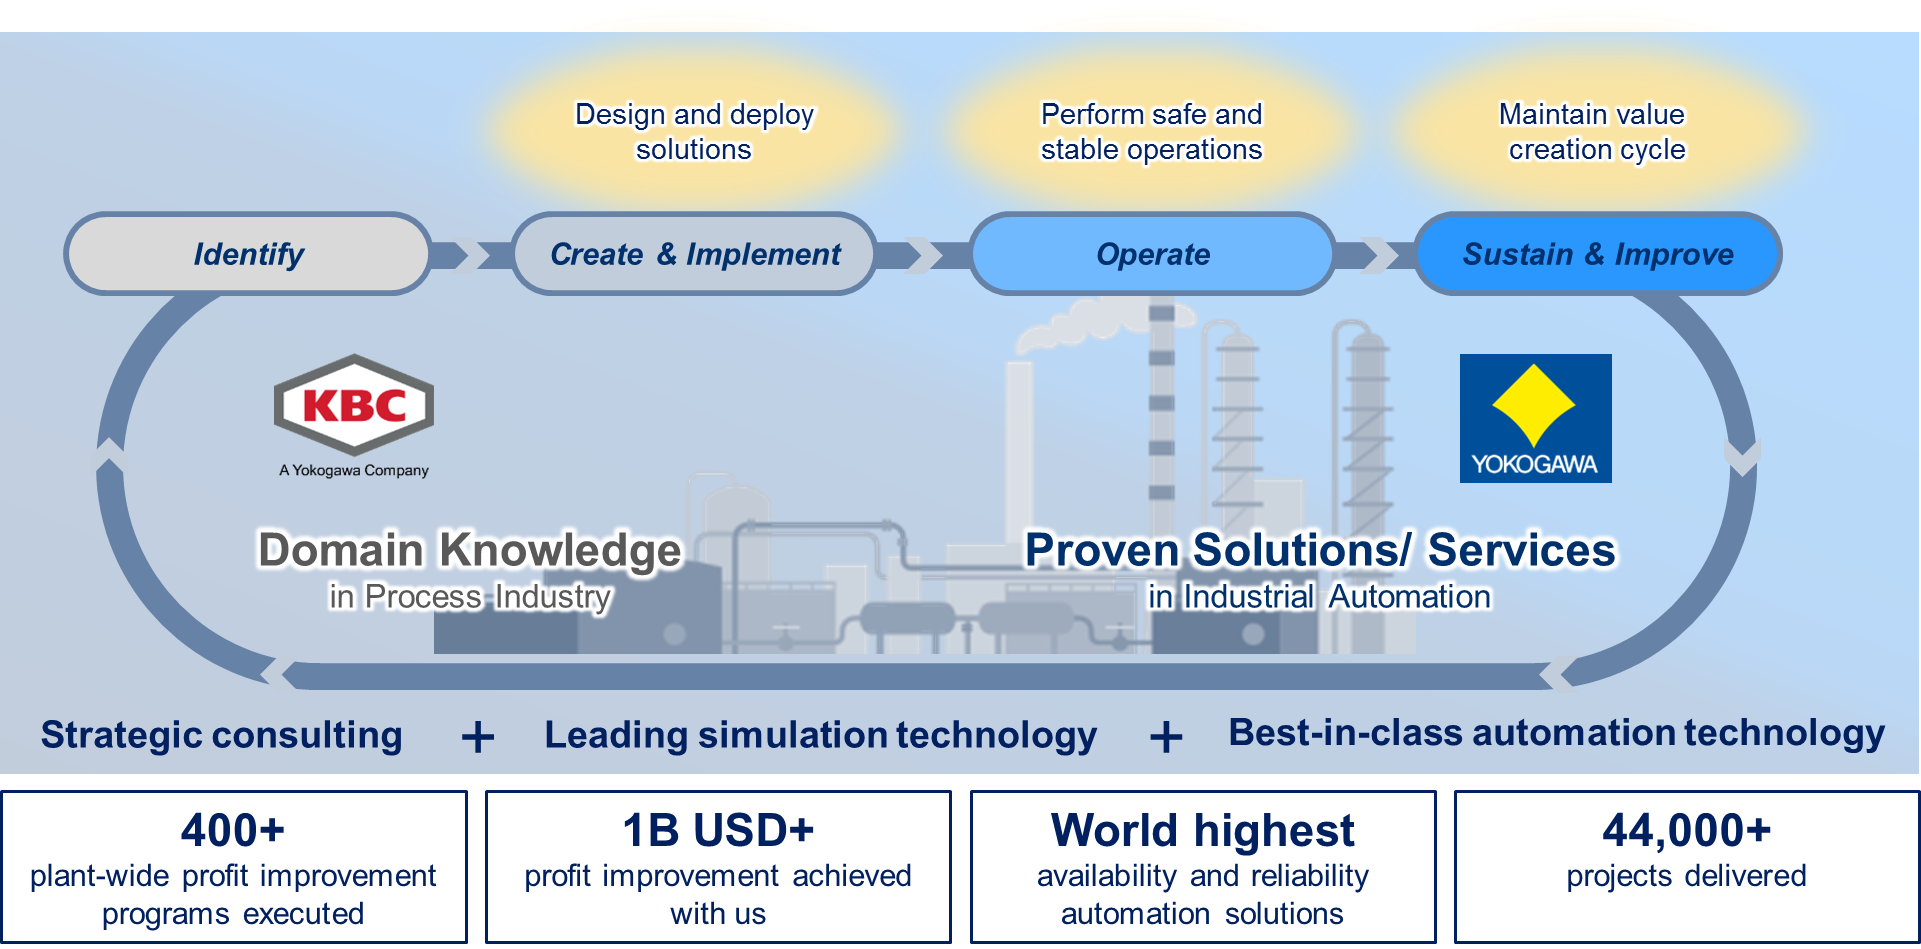 Synaptic business automation yokogawa electric corporation exhibit 14 ability to bring together proven solutions with domain knowledge fandeluxe Images